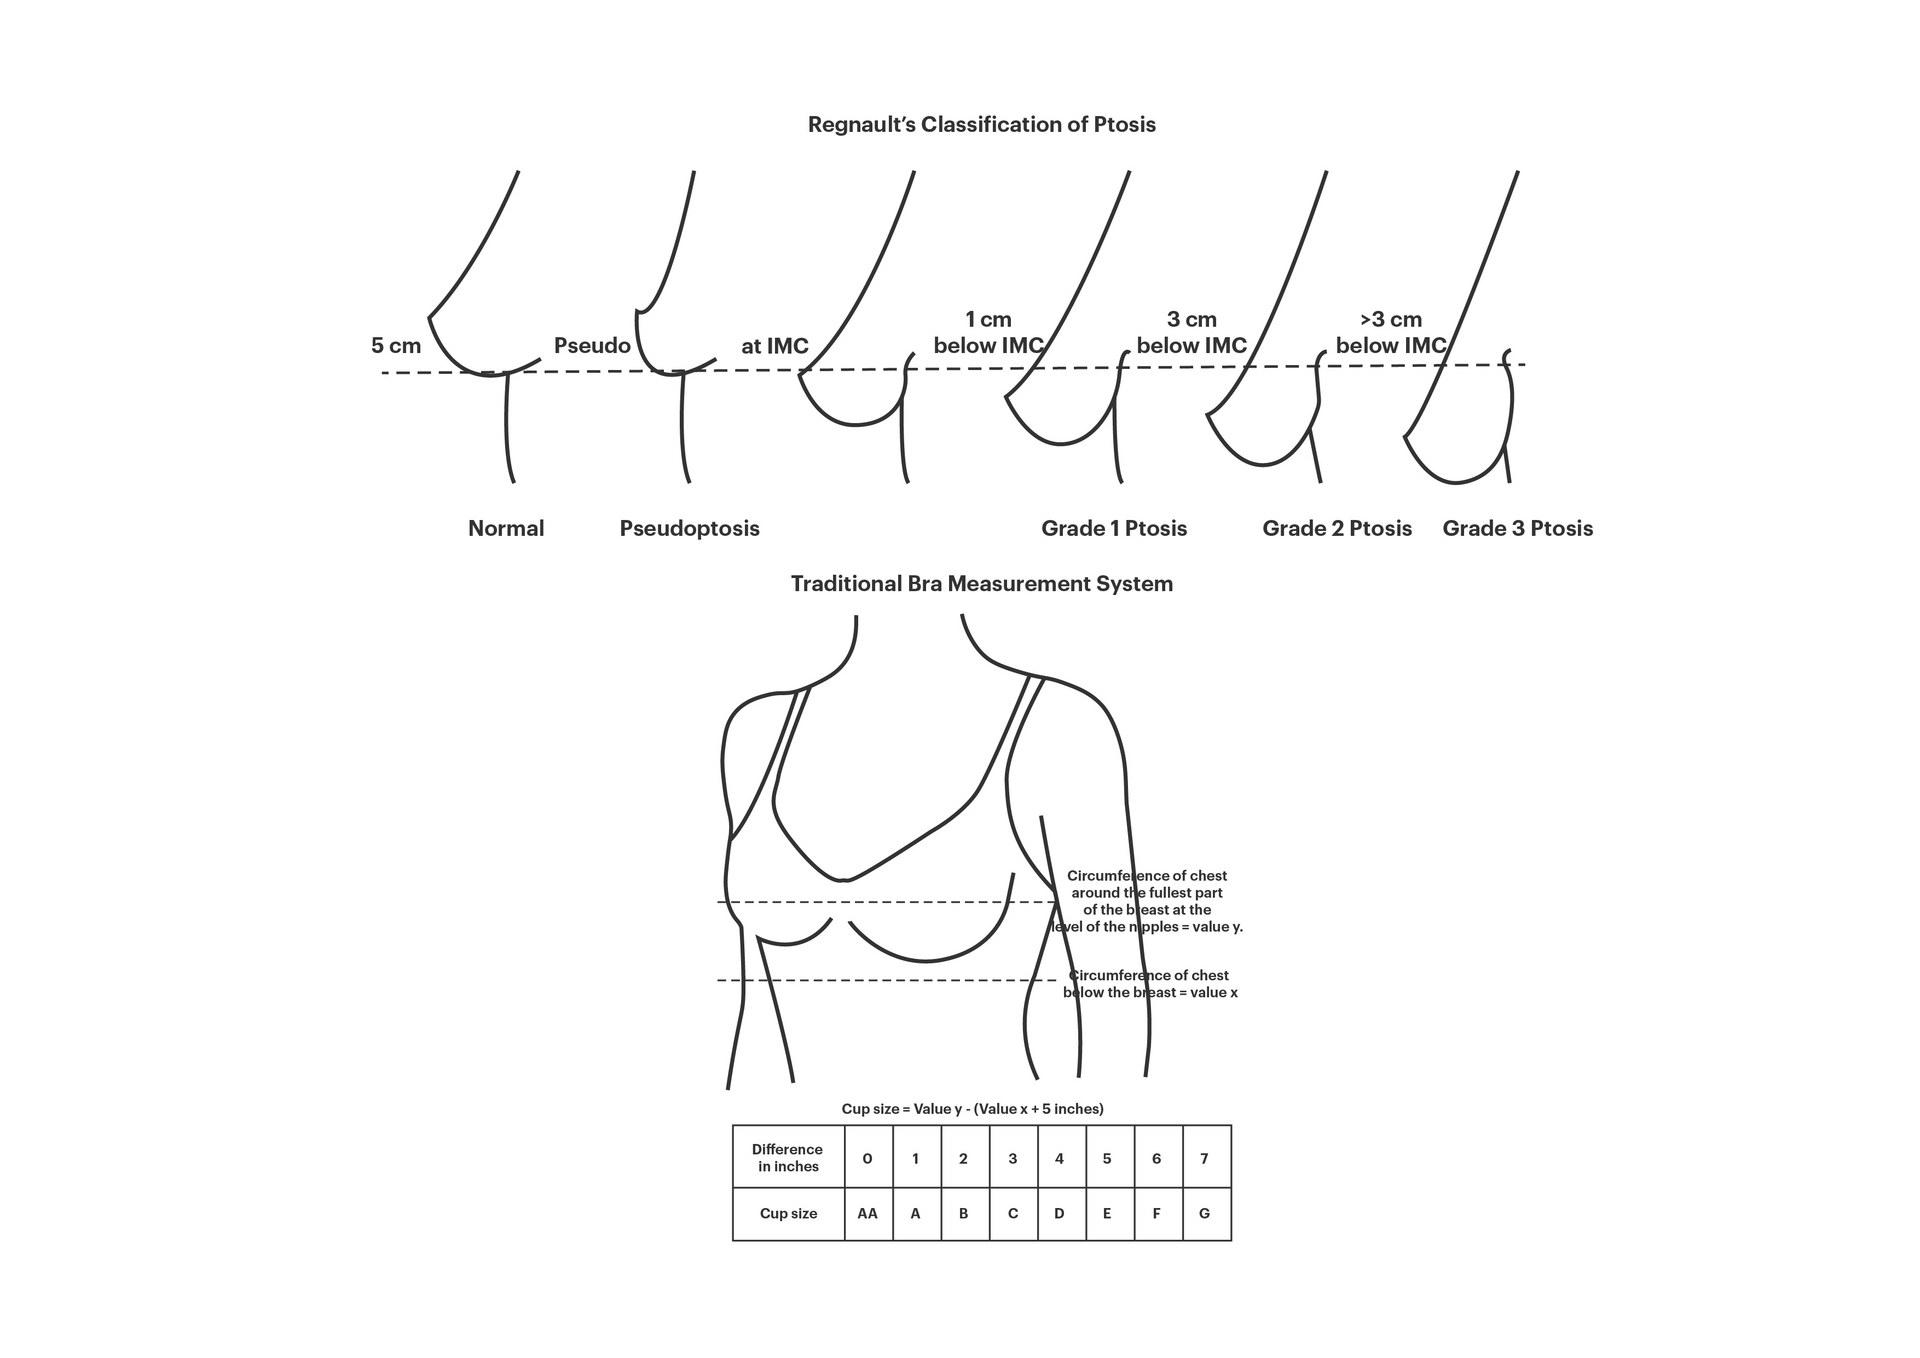 Regnault's Classification of Ptosis and the Traditional Bra Measurement System